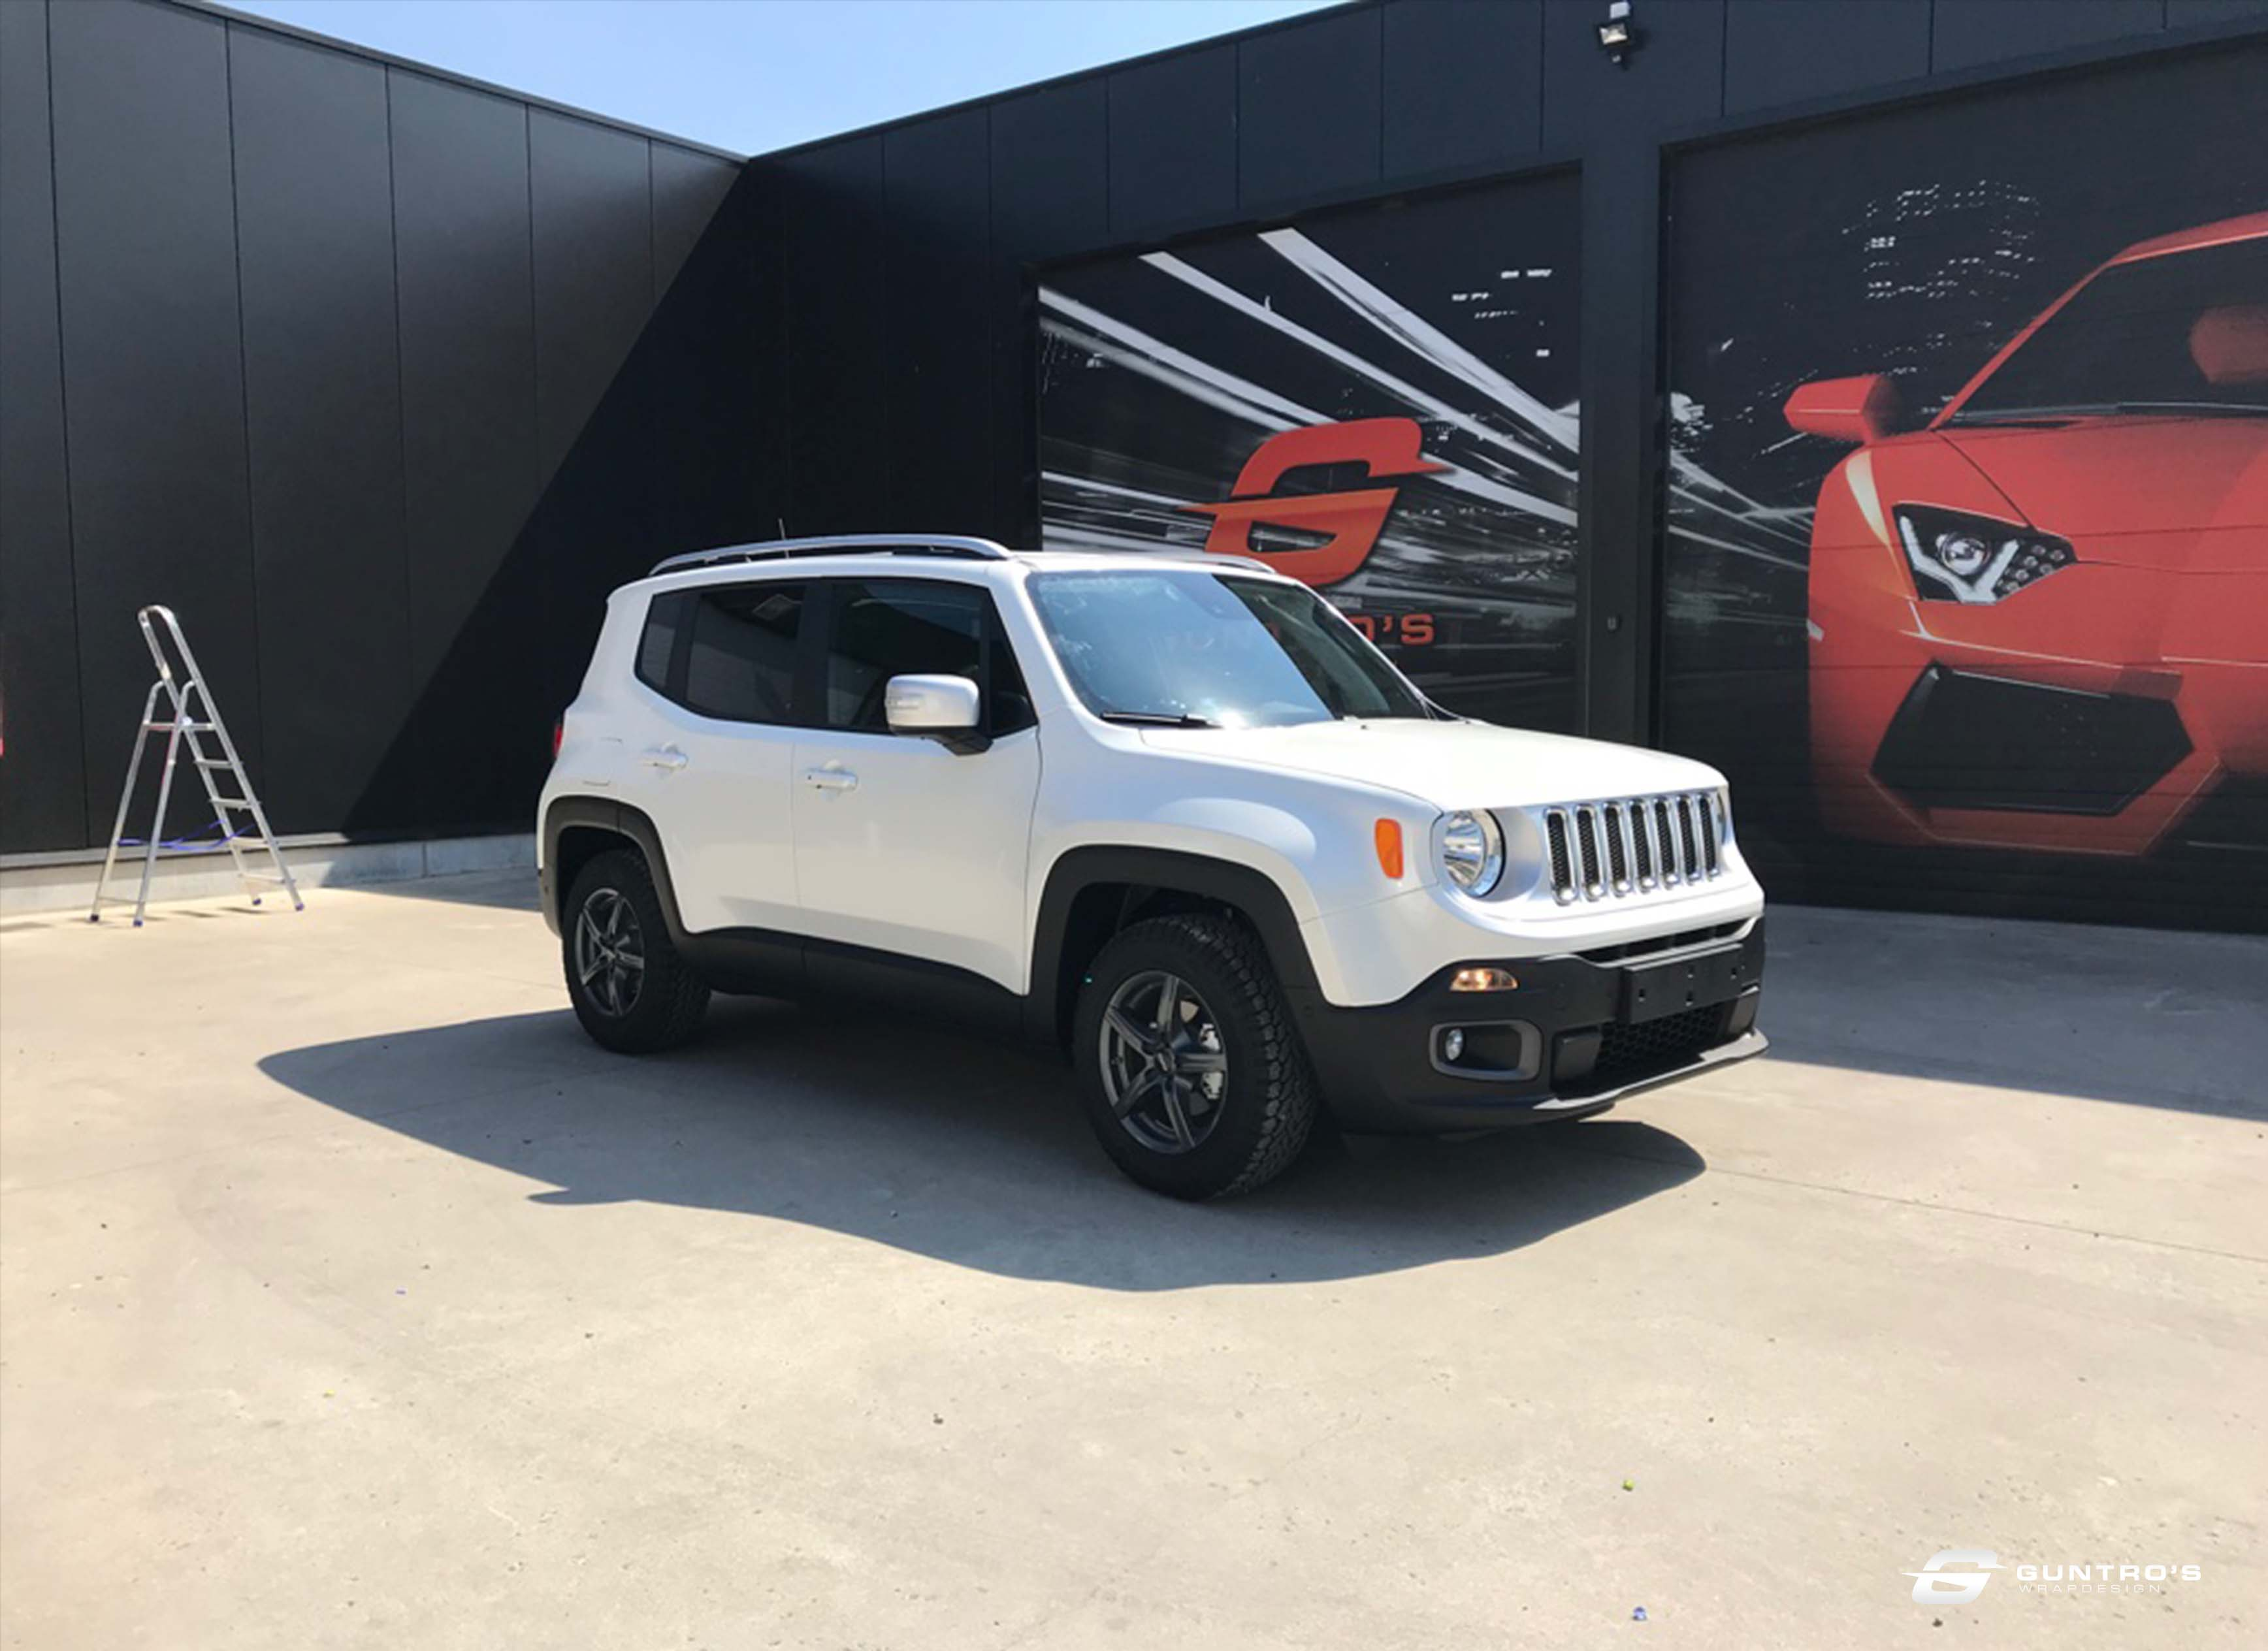 FULL WRAP JEEP RENAGEDE